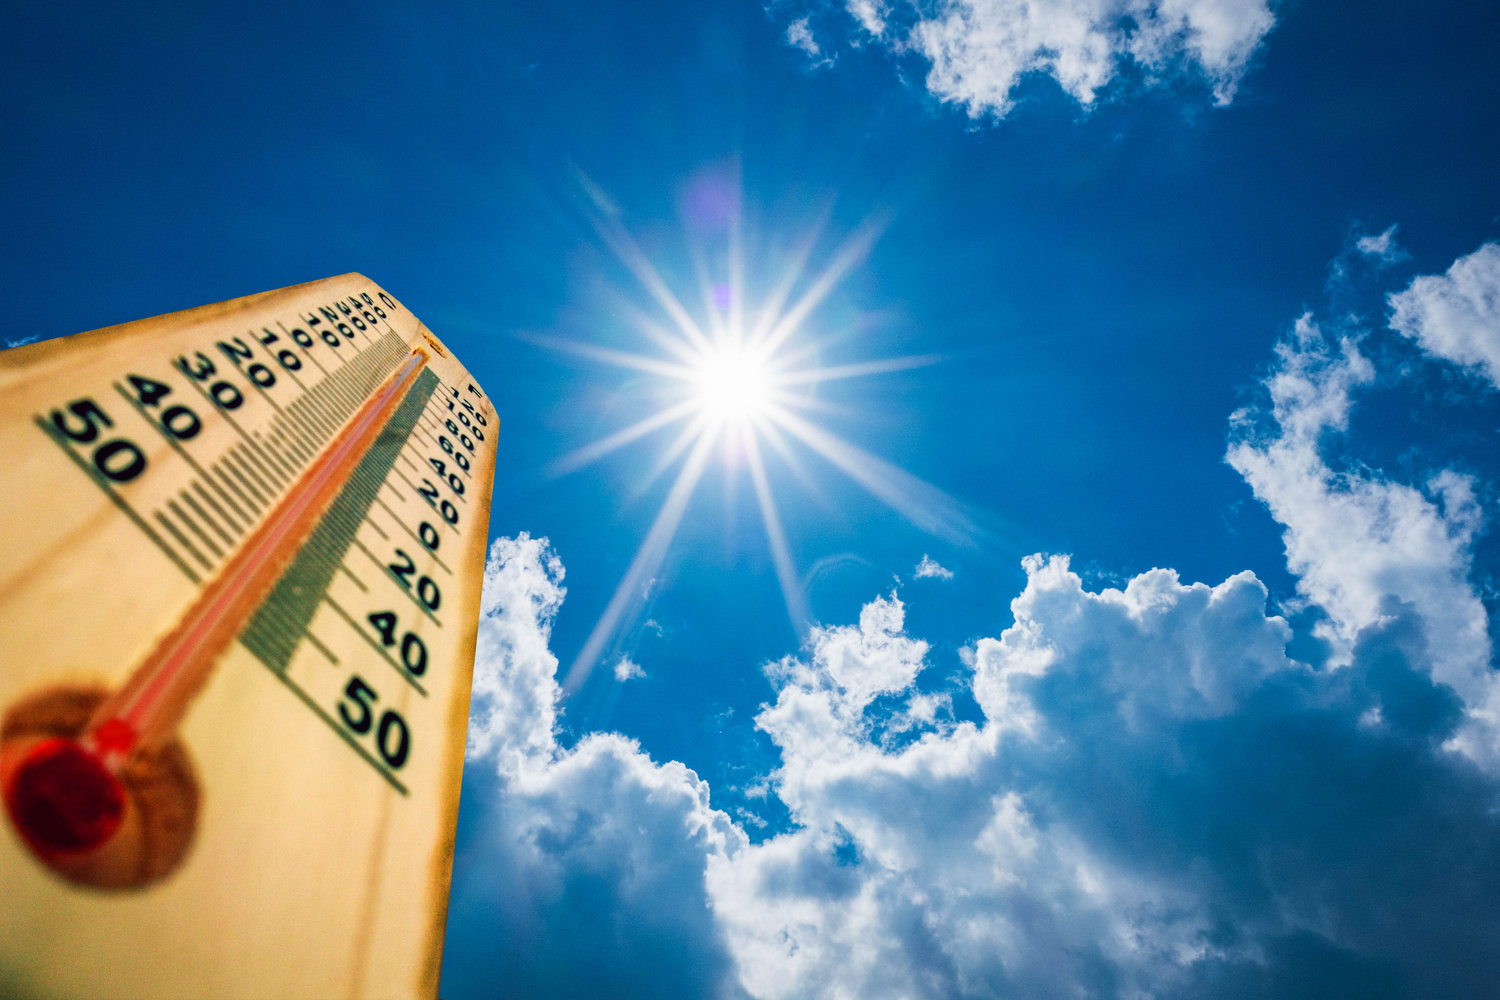 Temperatures in the Valley are soaring this week, and the National Weather Service has issued an extreme warning through 8 p.m. Saturday, Aug. 1.